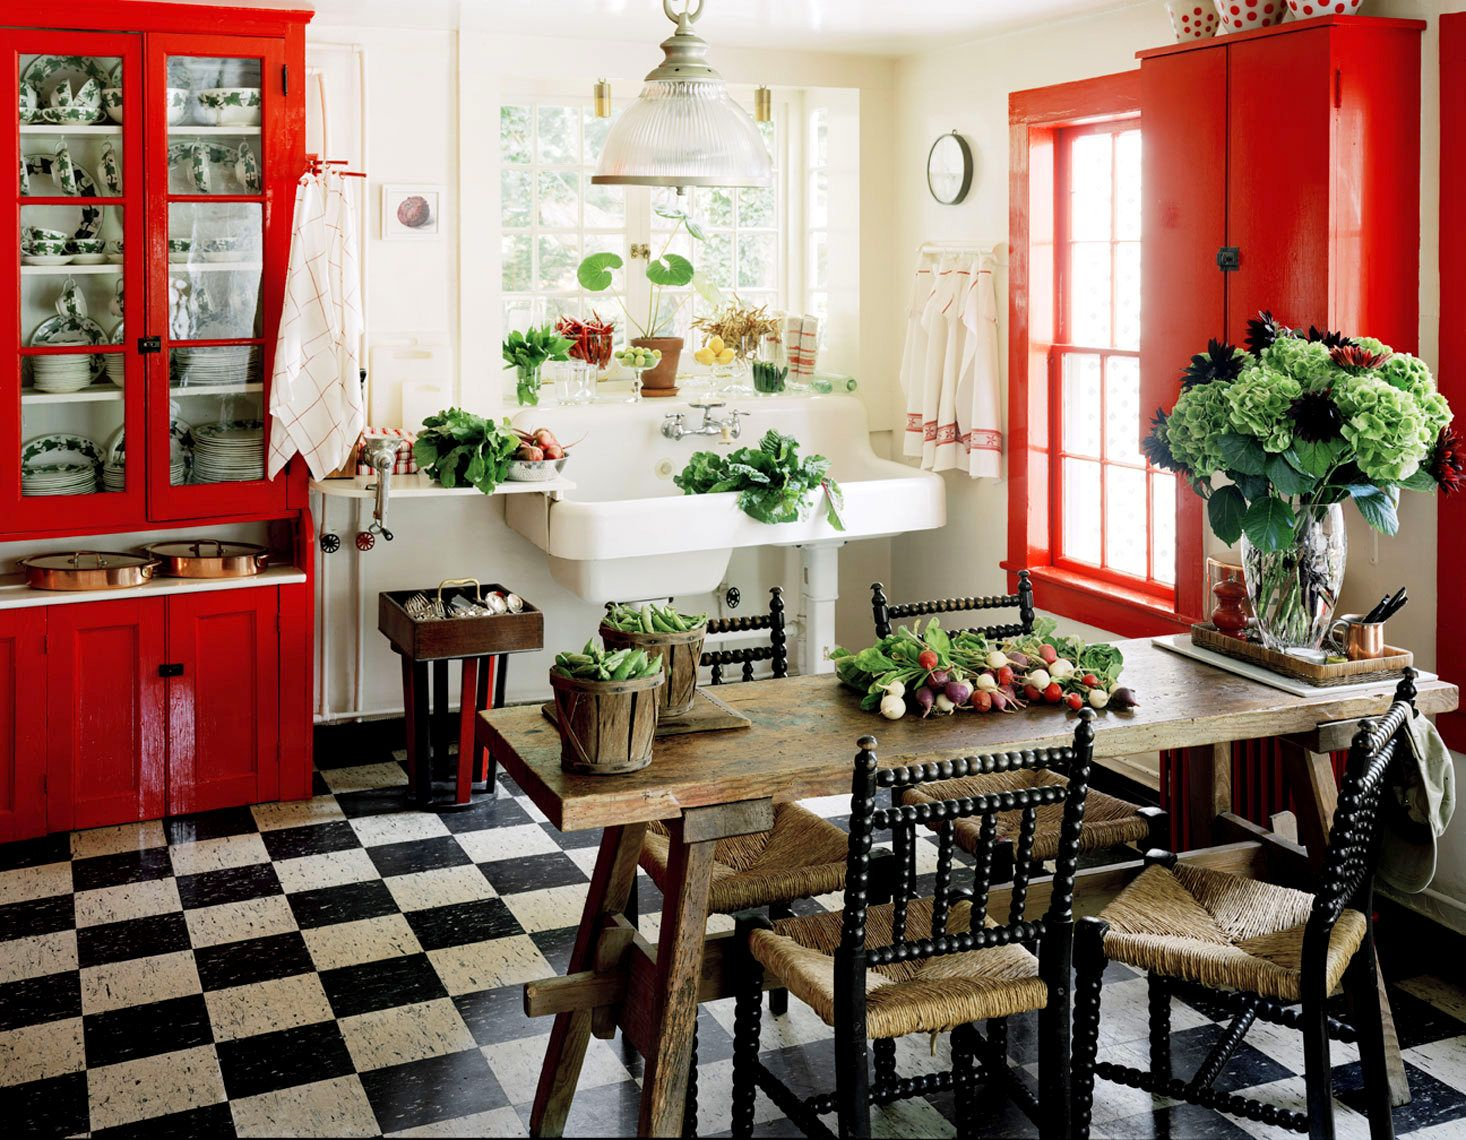 eye catching rustic kitchen cabinets. Adorable Country Kitchen Idea With Rustic Wood Dining Table And Unique Black Chairs White Sink Eye Catching Cabinets C